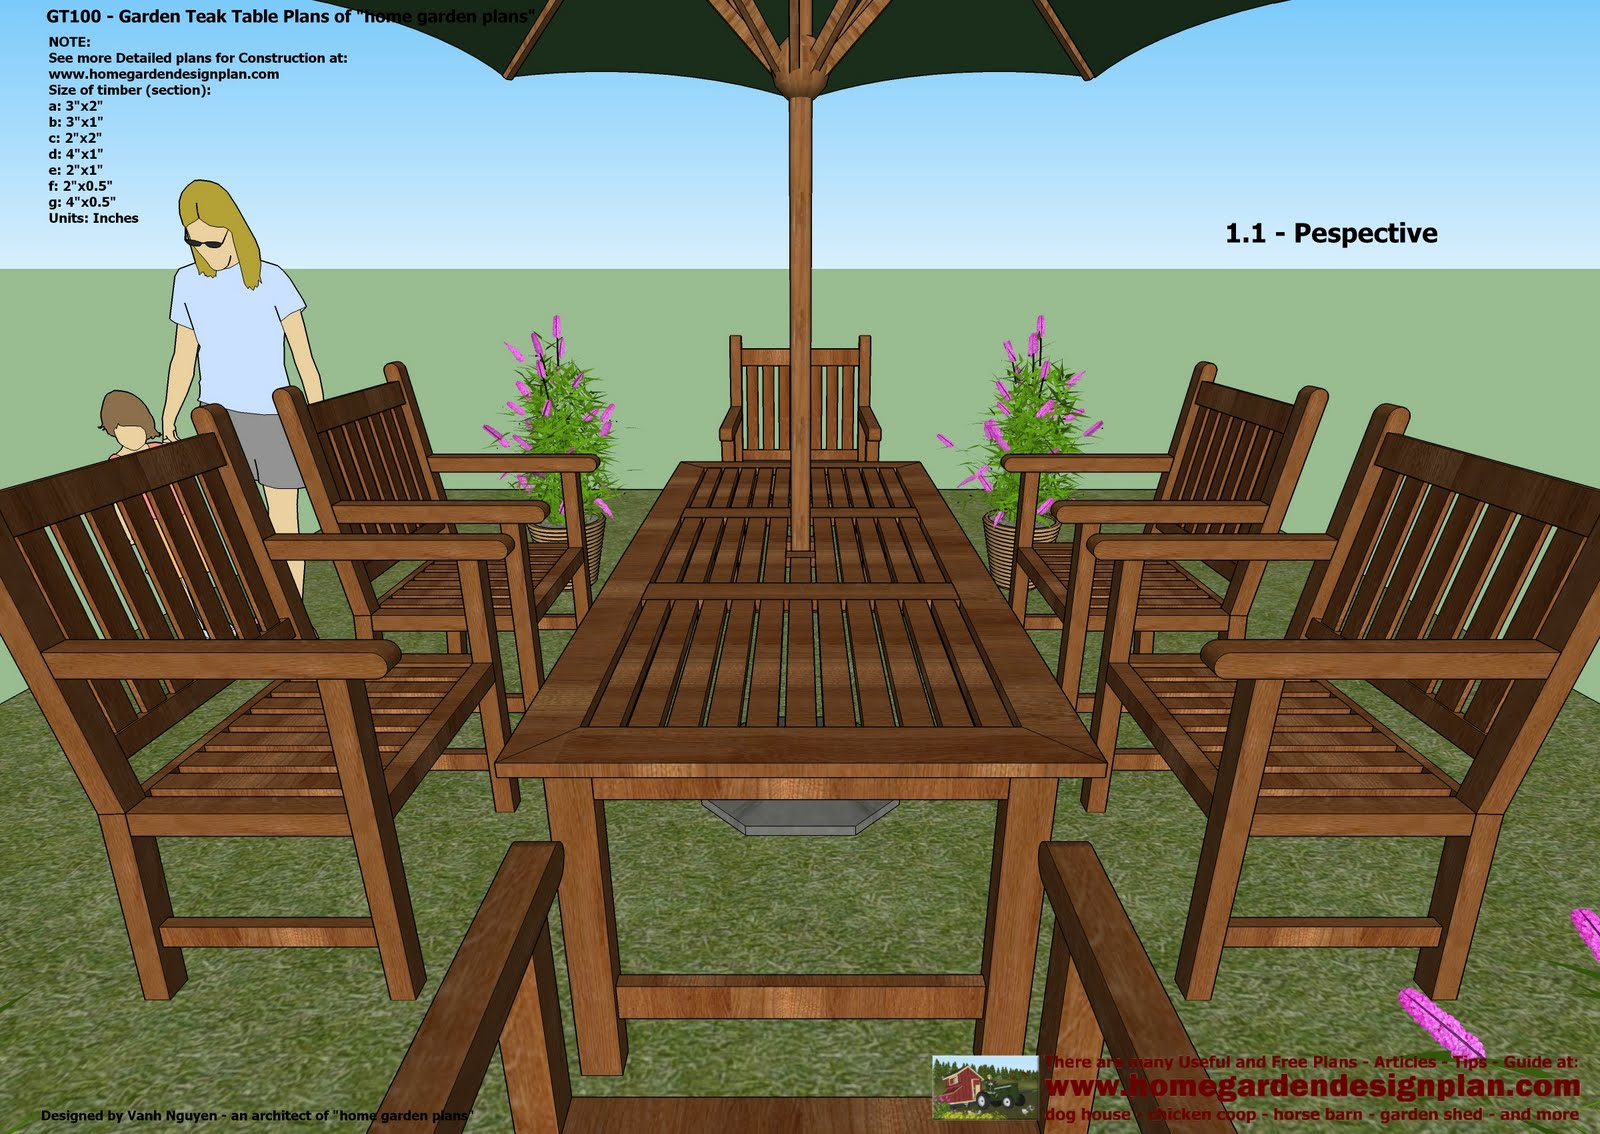 Patio furniture plans wooden ideas wood working project plan for Patio furniture designs plans